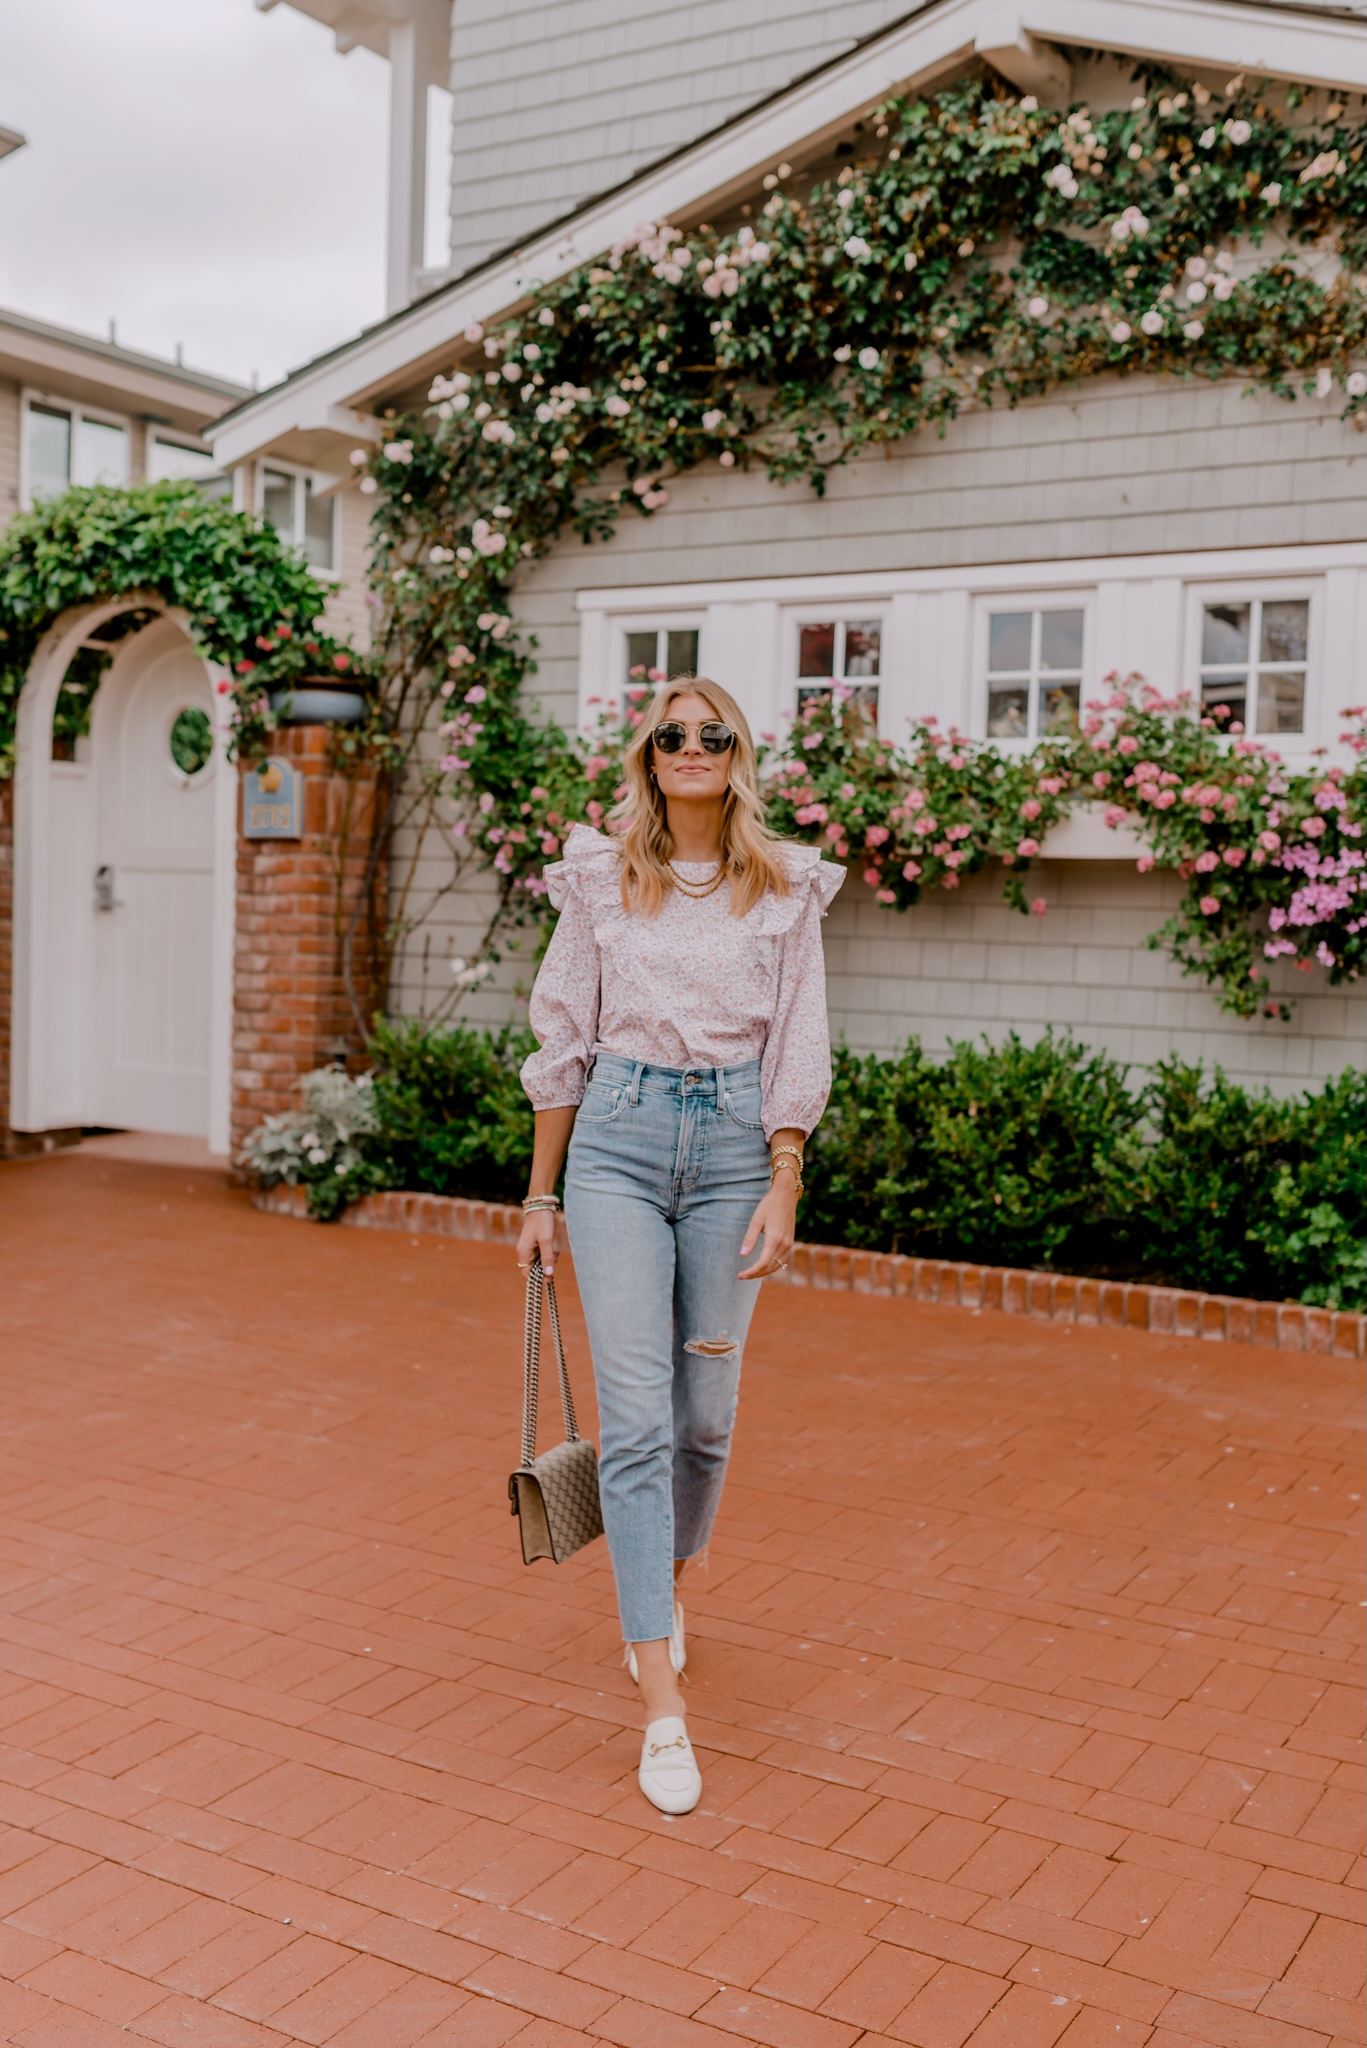 woman walking and wearing jeans and ruffle top